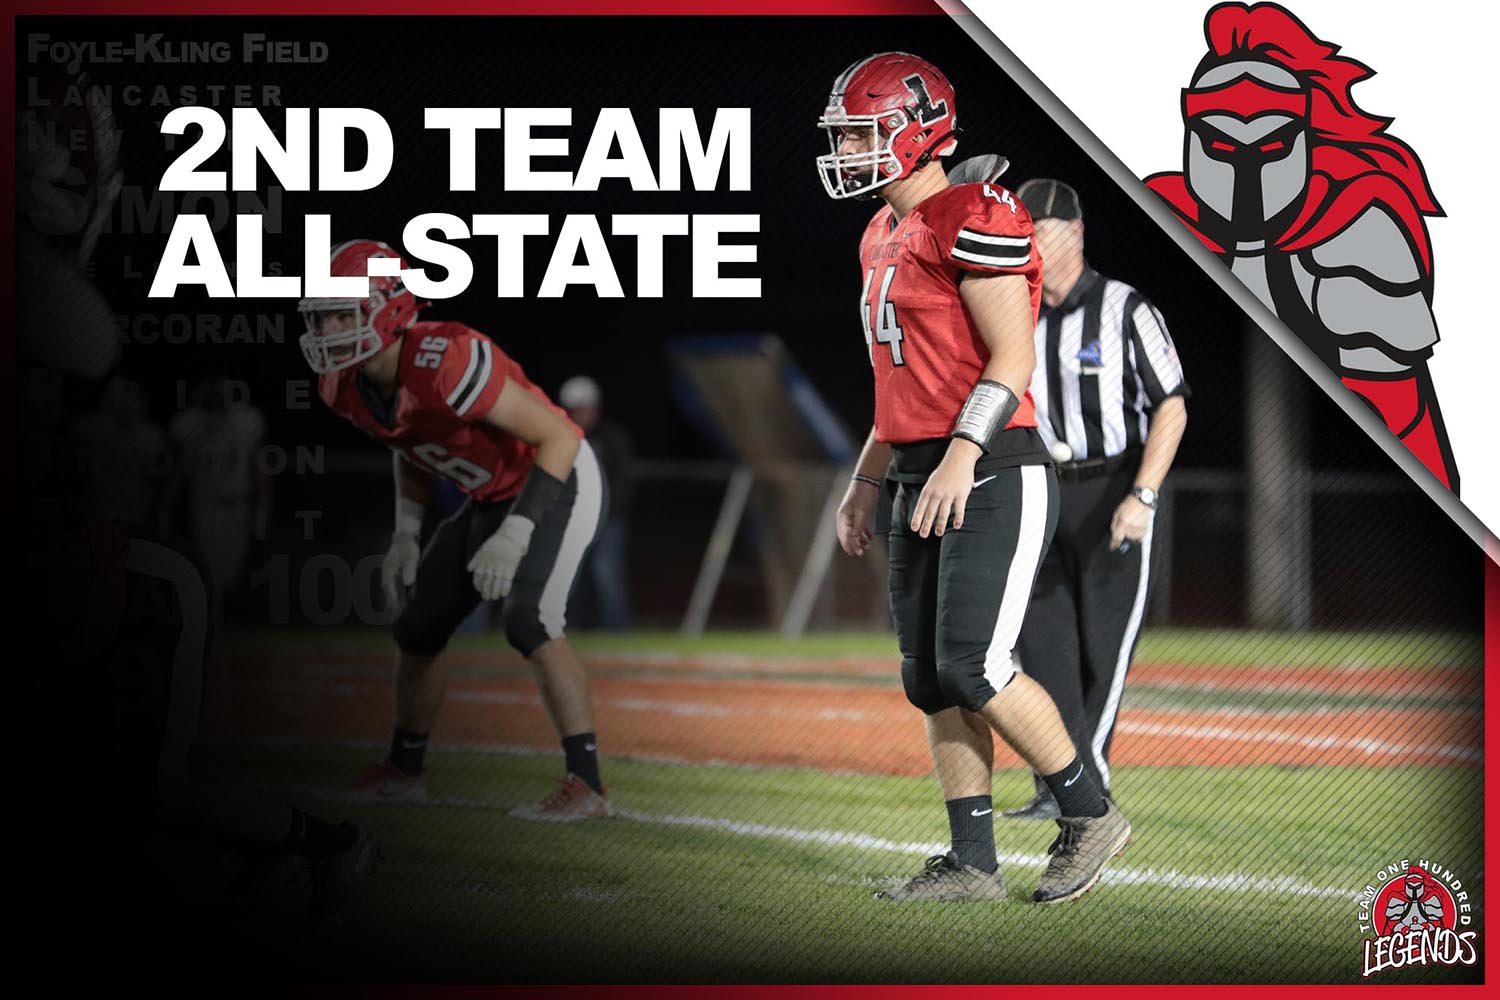 Matt Marschner ALL-State 2nd Team!